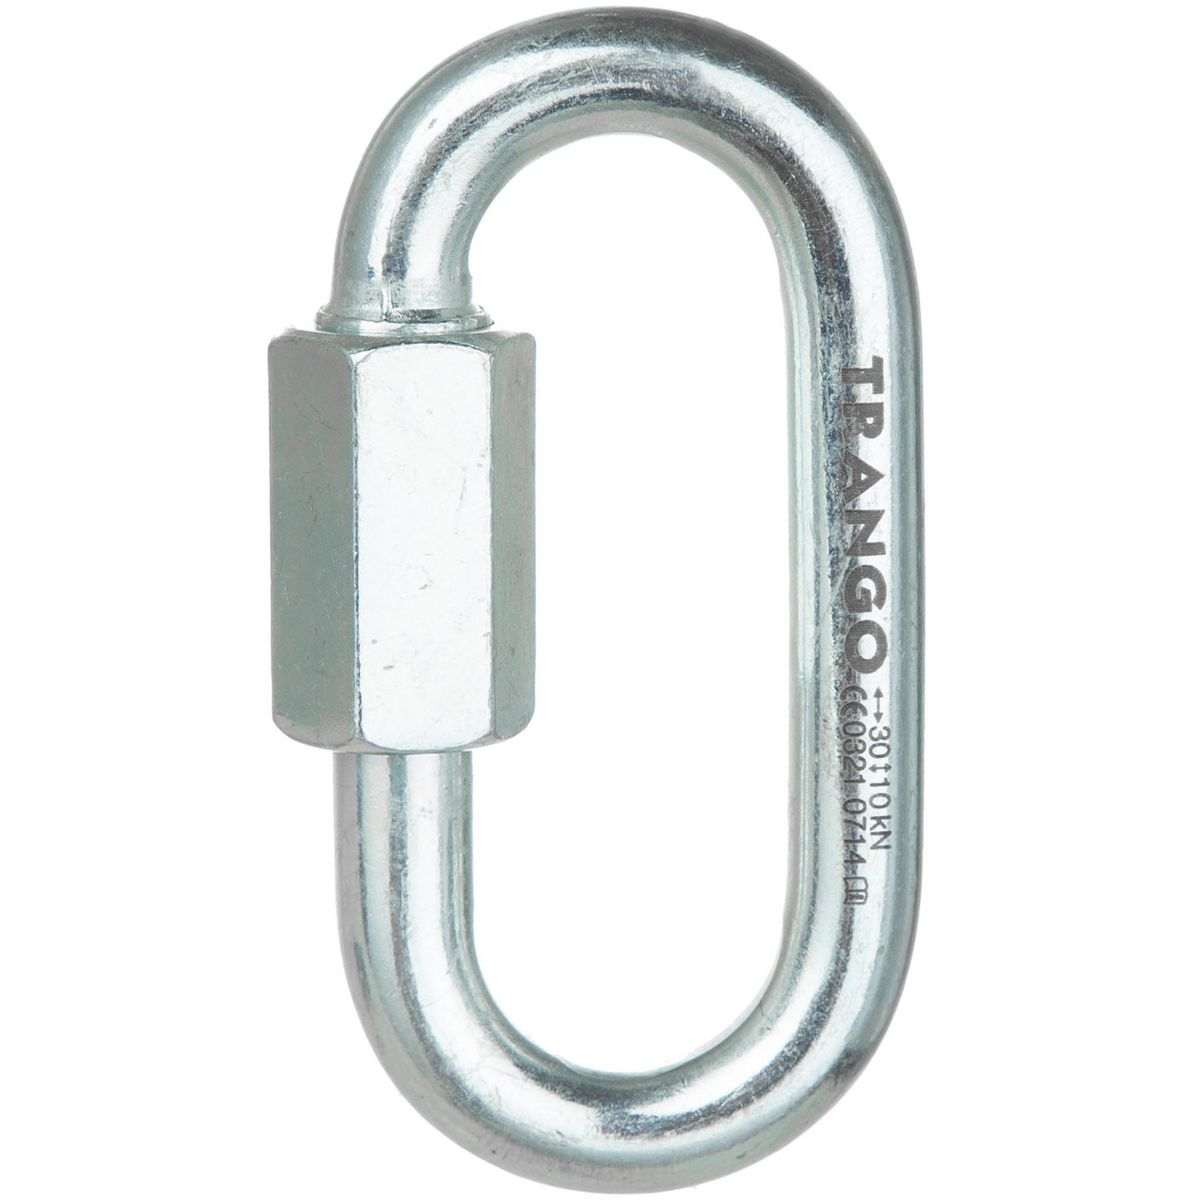 Trango 10mm Quicklink